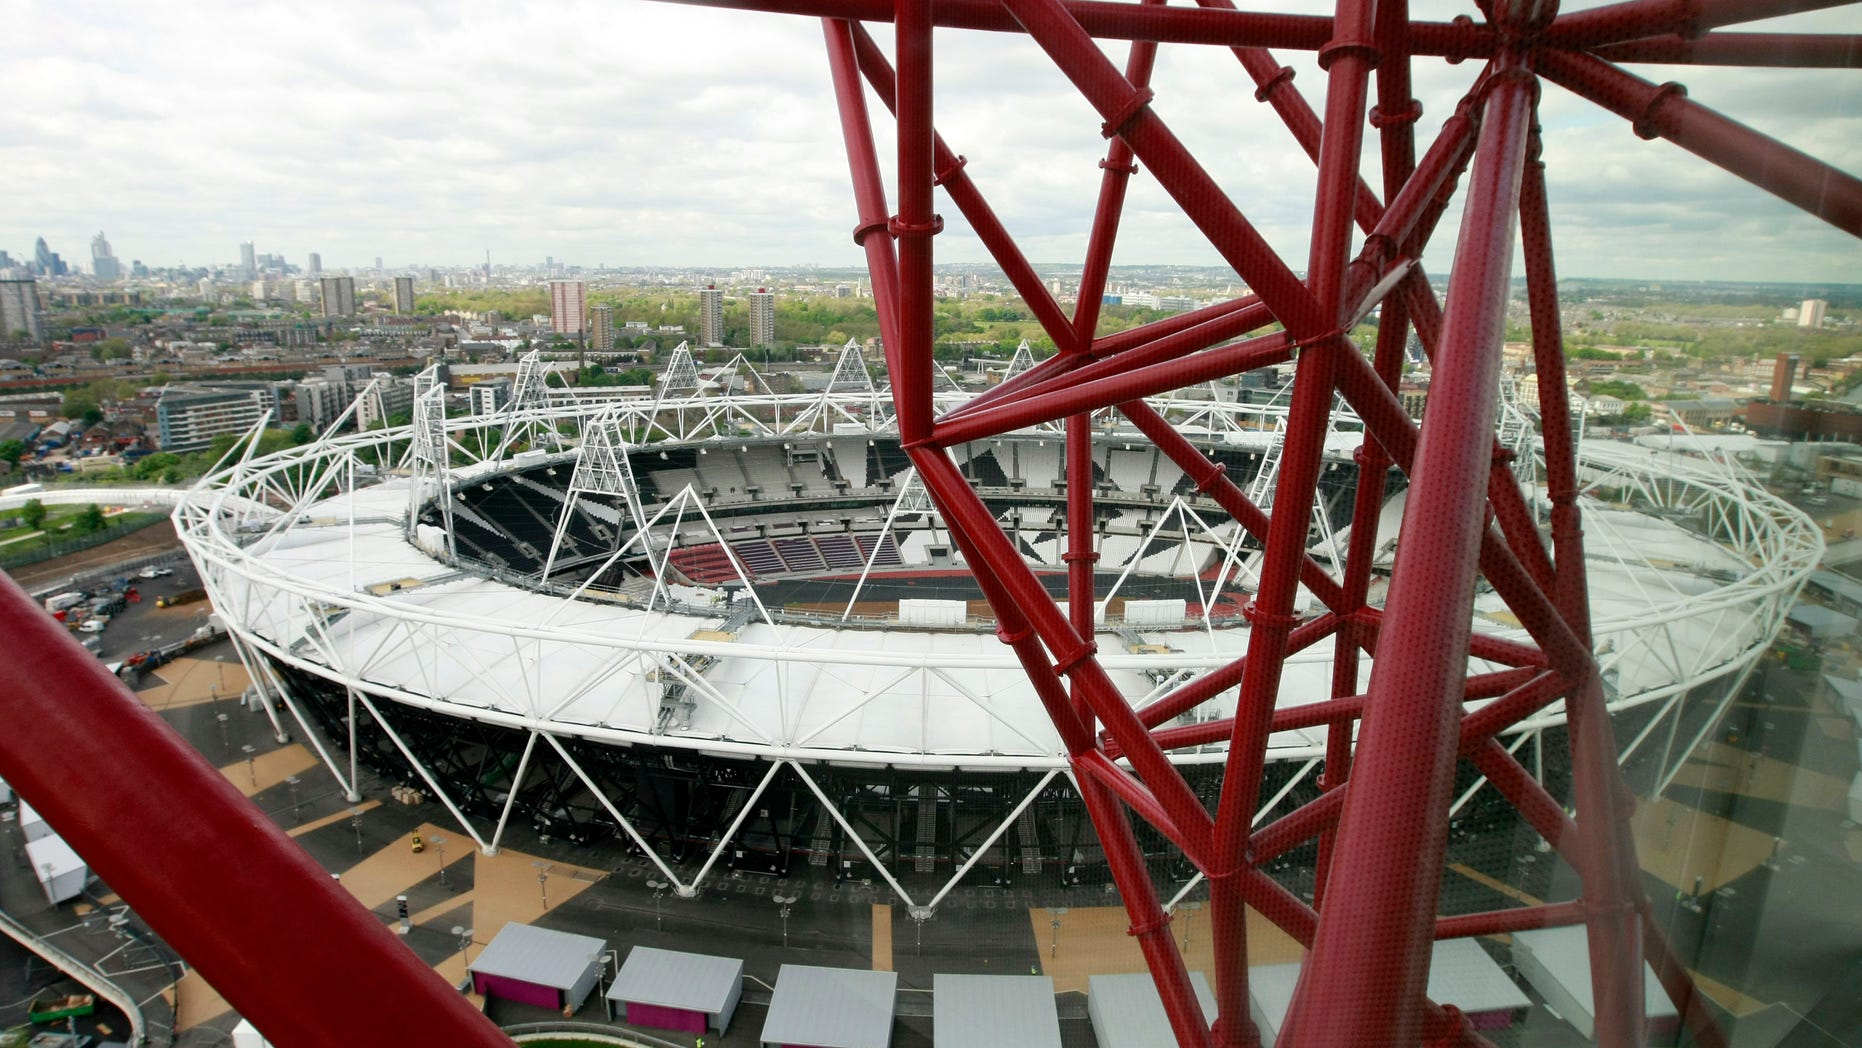 May 11, 2012: A view of the Olympic Stadium from the ArcelorMittal Orbit sculpture during the official unveiling at the Olympic Park, London, Friday.